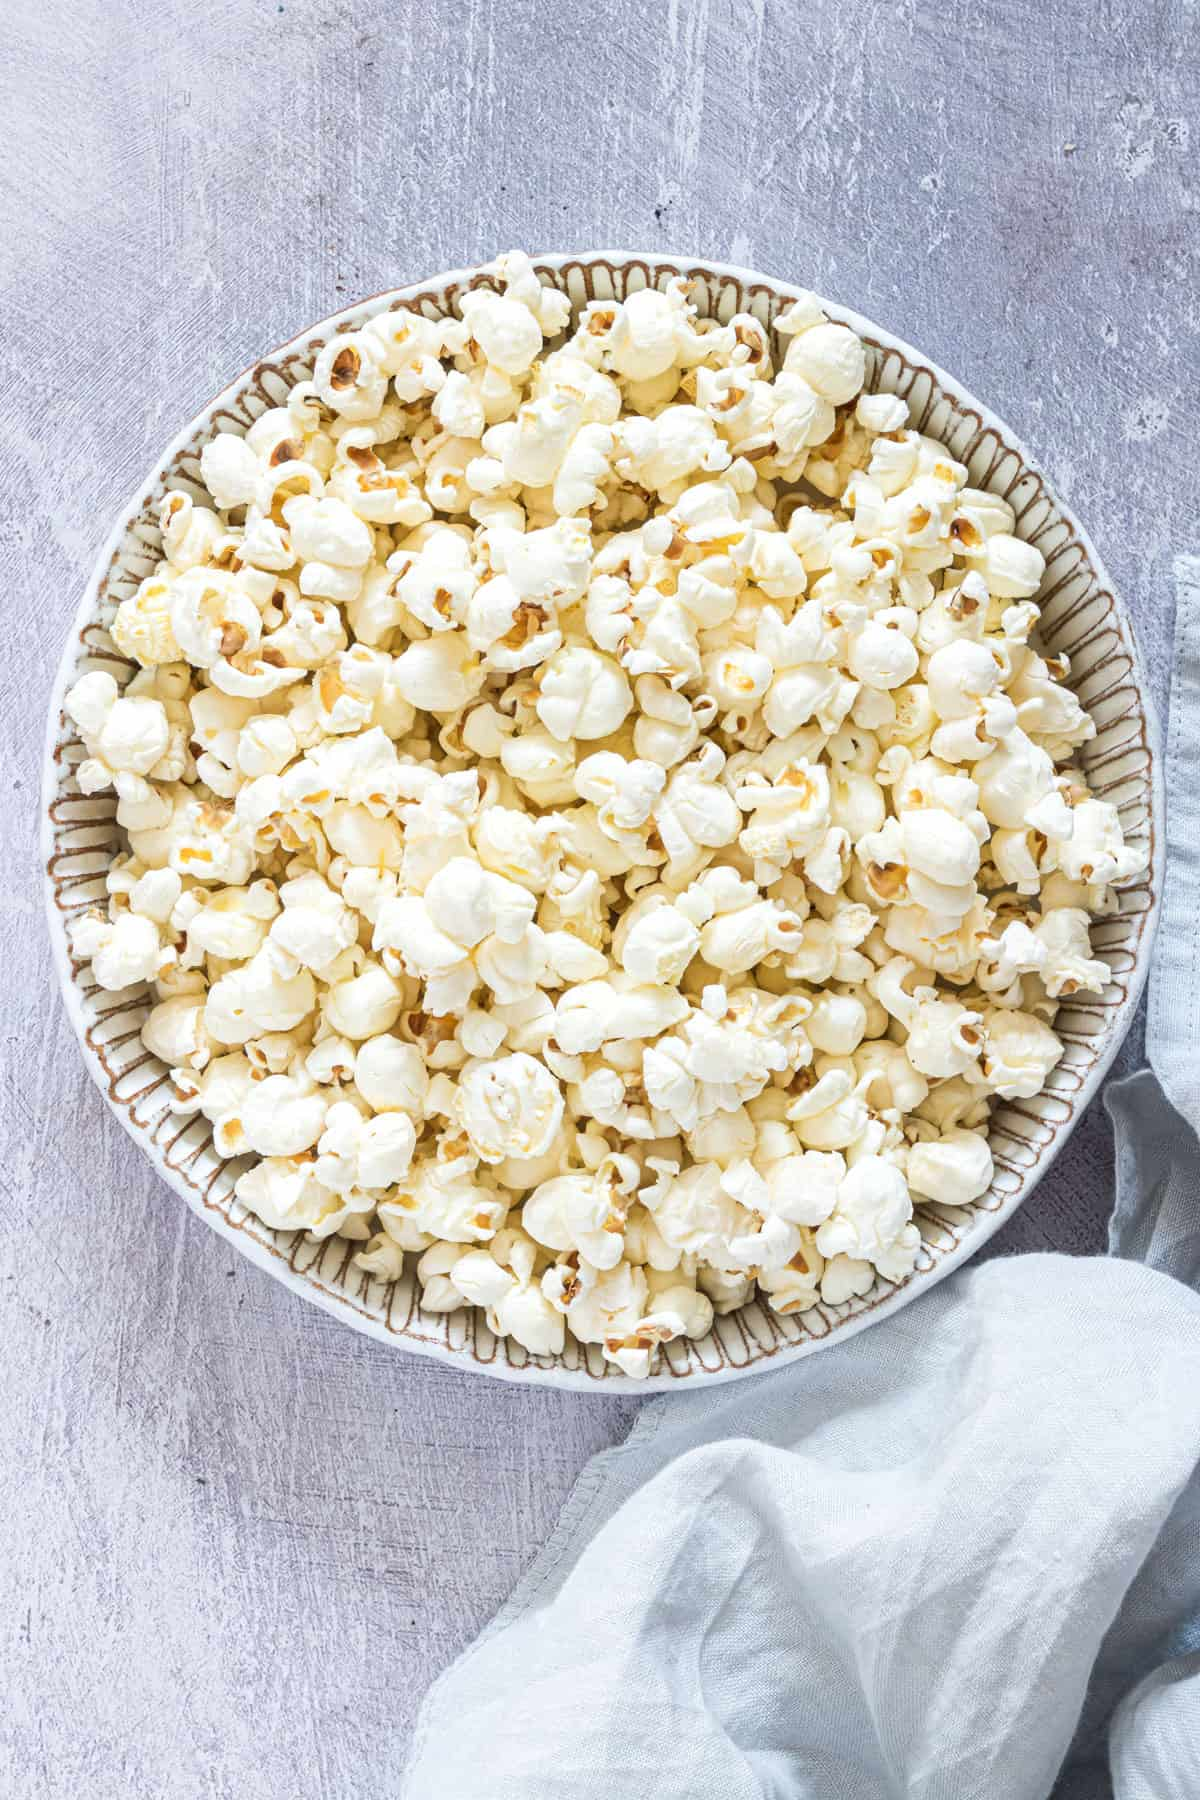 A bowl of air fryer popcorn on a table with a napkin